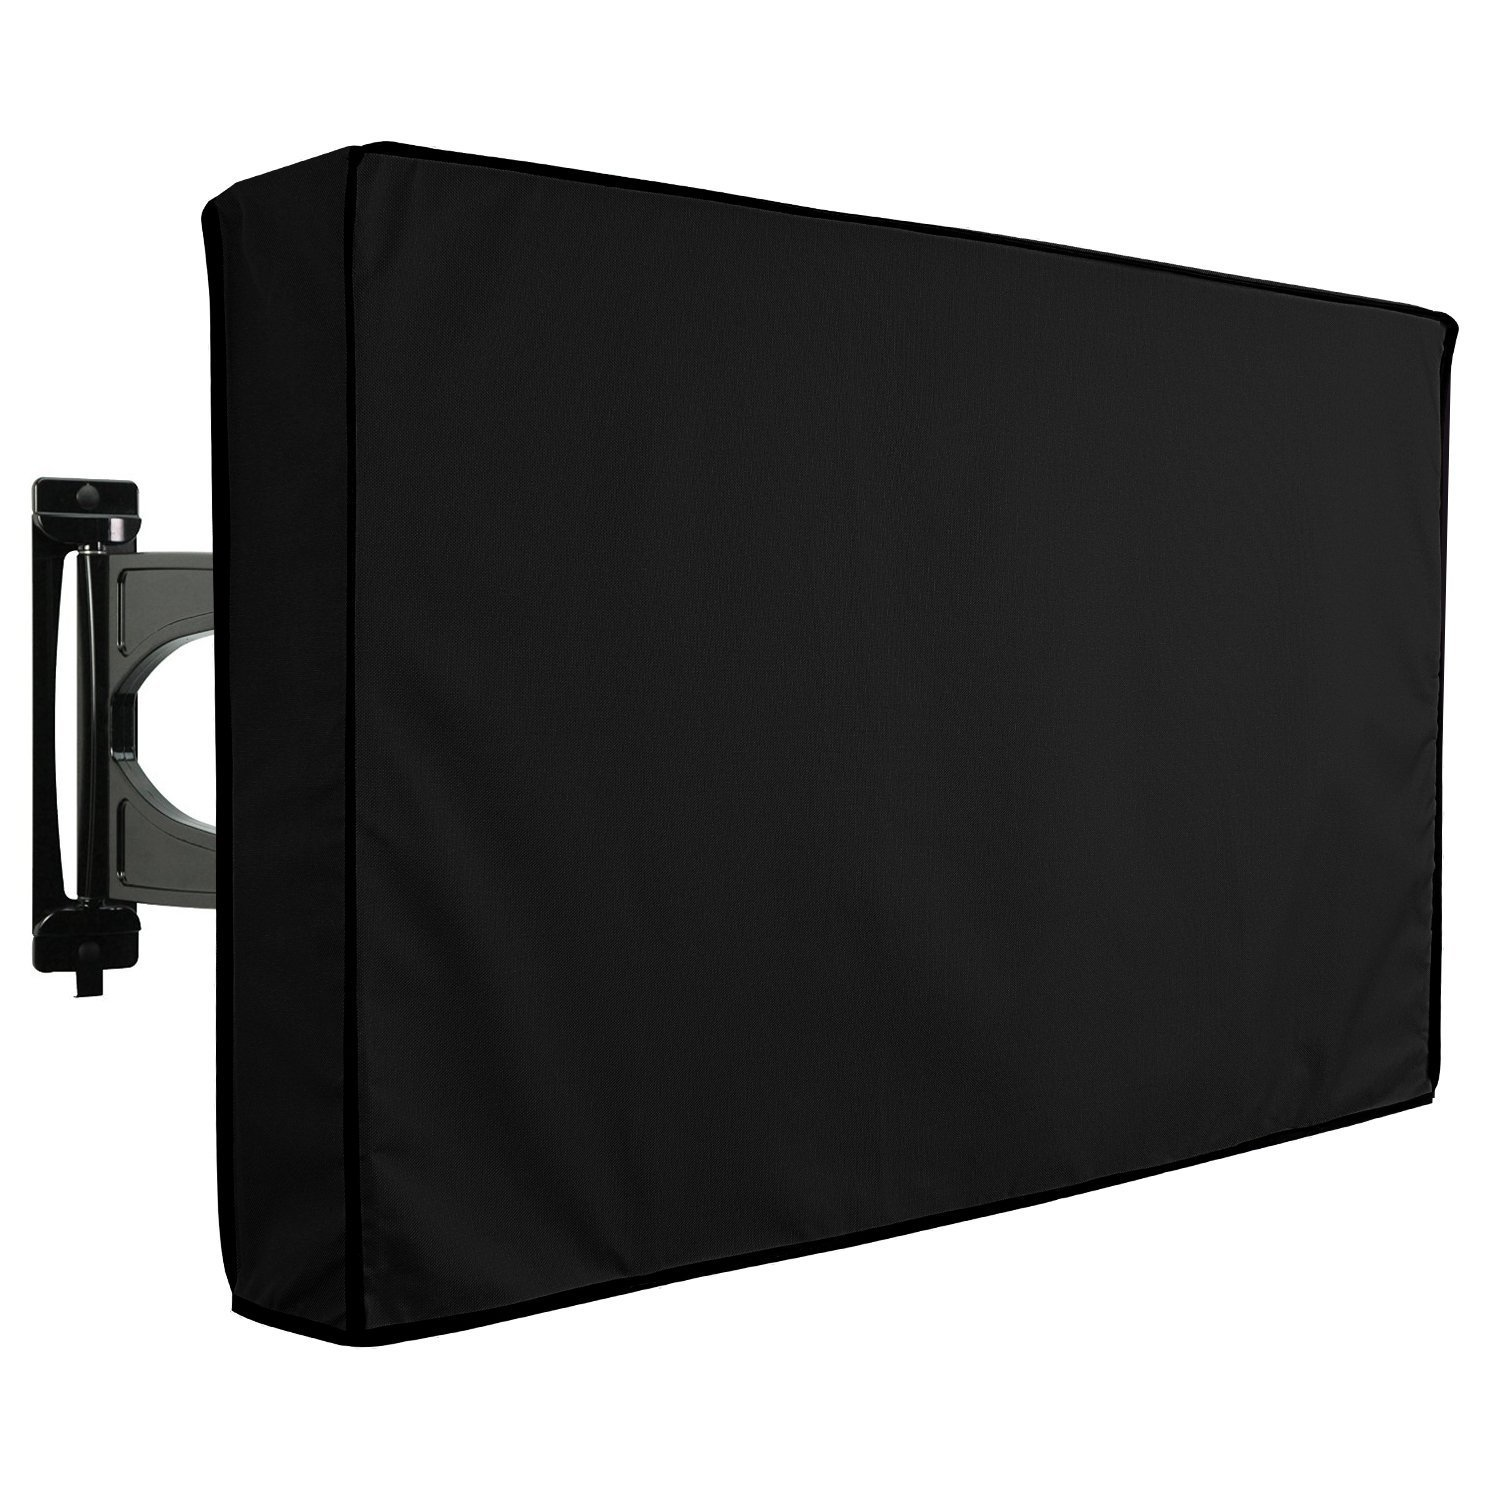 Outdoor TV Cover - PANTHER Series - Universal Weatherproof Protector for 65'' - 70'' TV